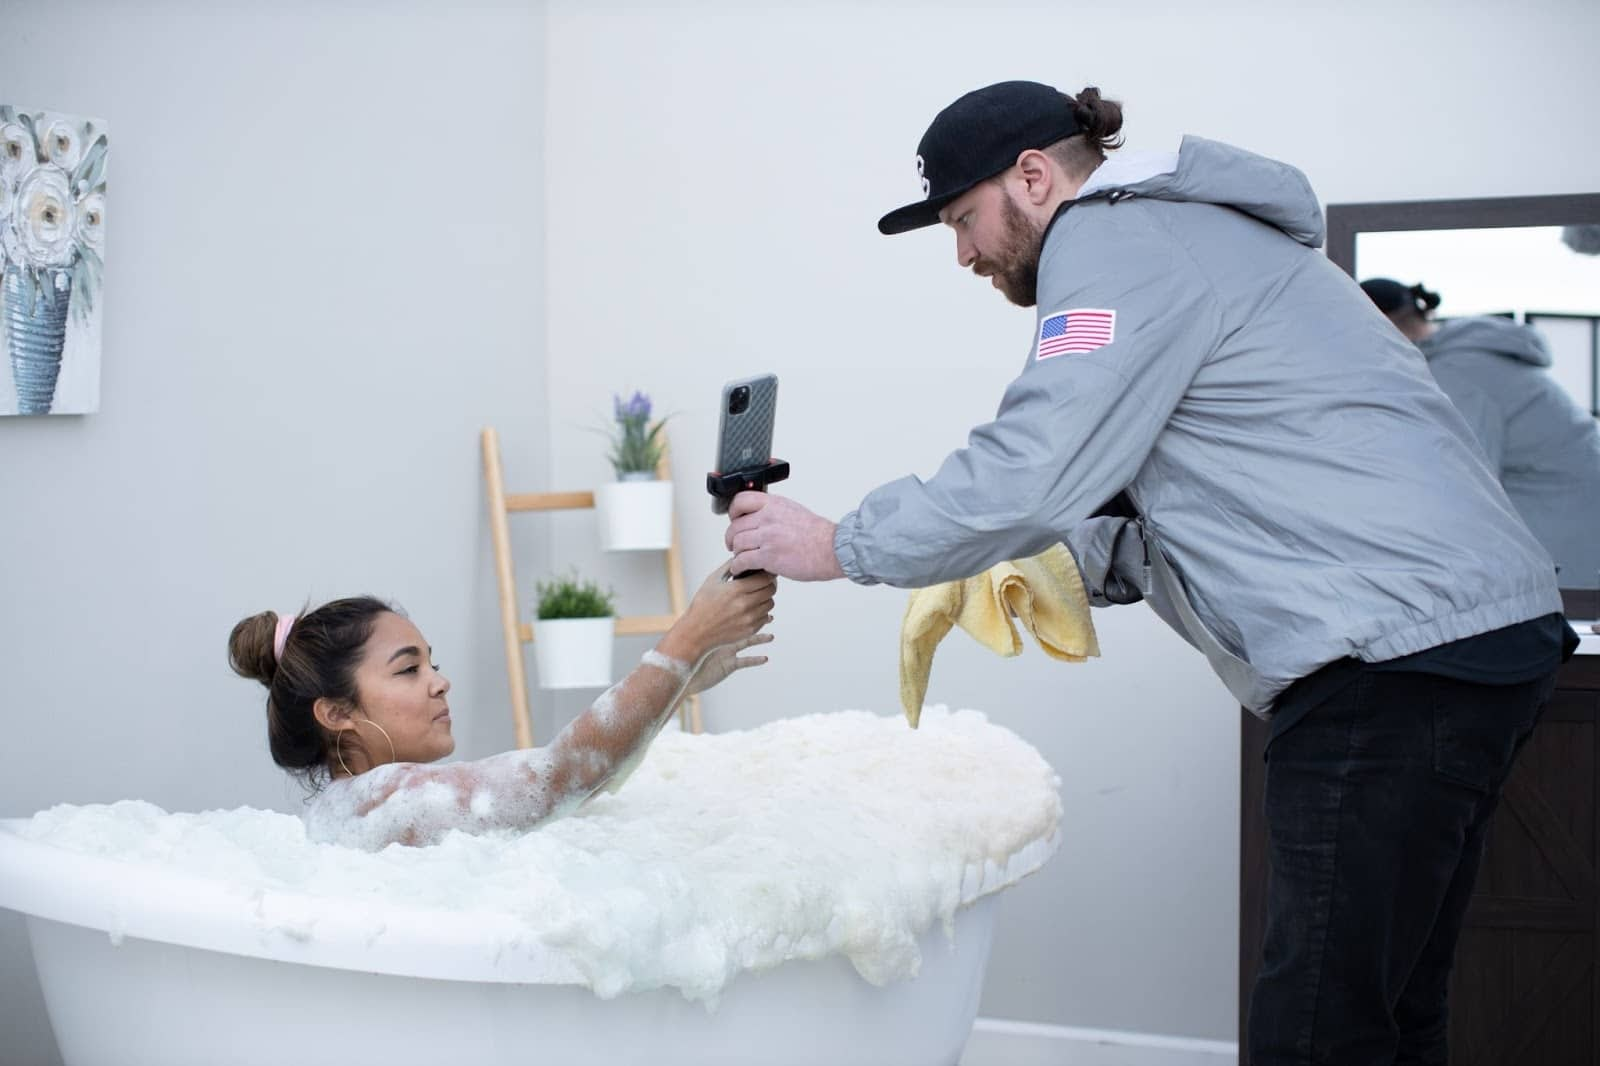 Man wearing a gray hoodie handing a camera to a woman sitting in a white bathtub